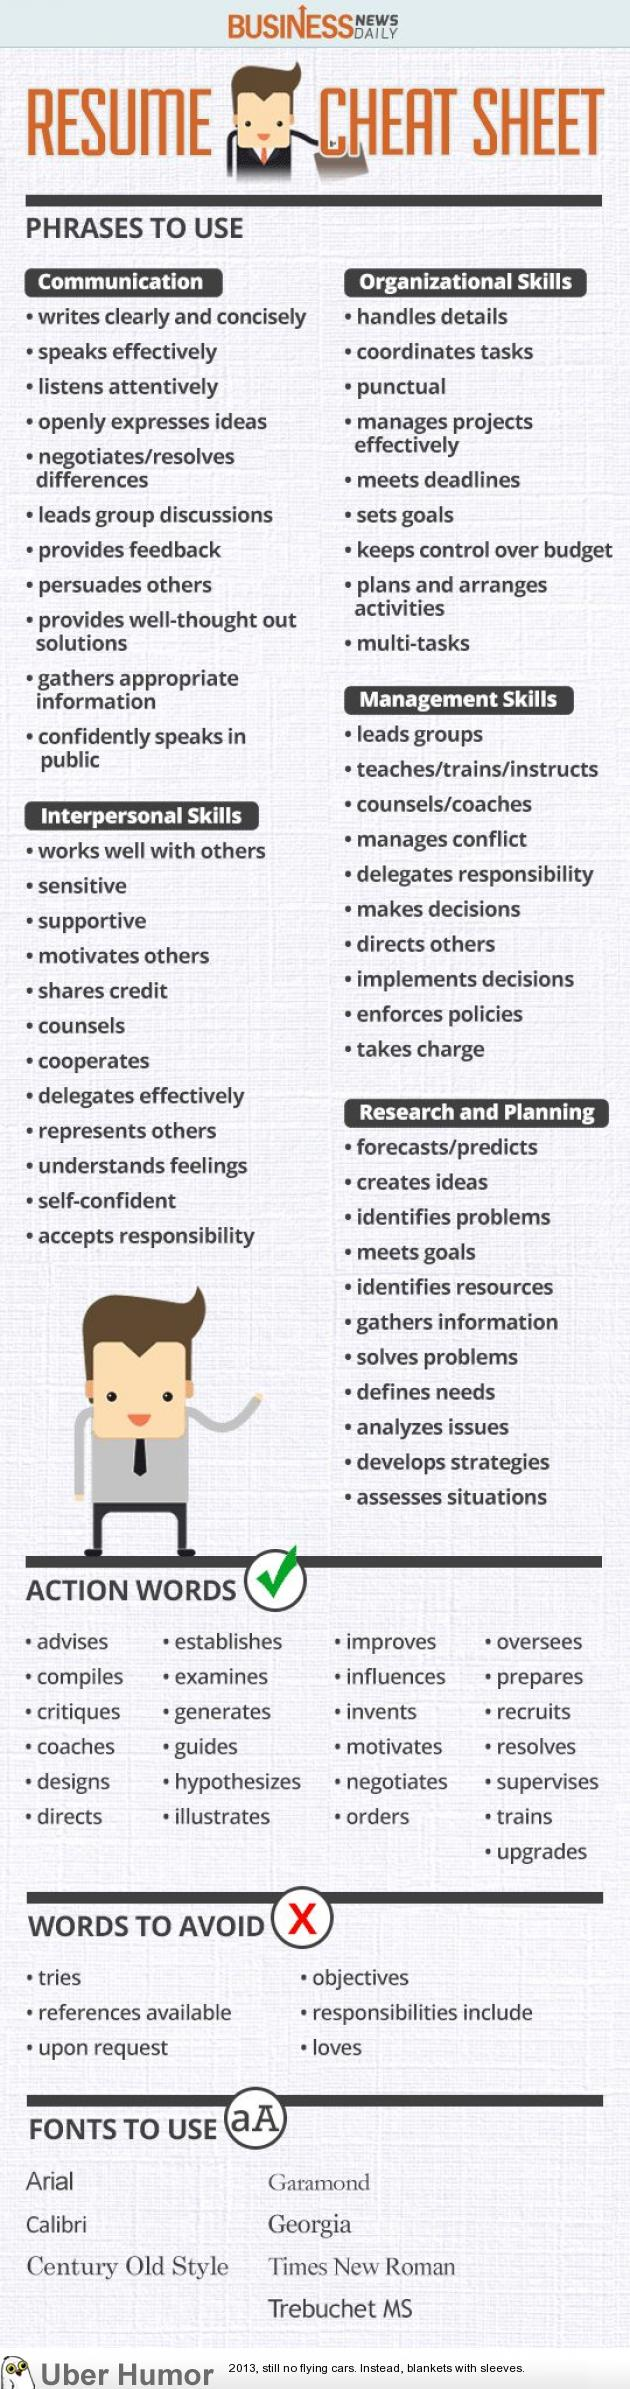 Resume Cheat Sheet Funny Pictures Quotes Pics Photos Images